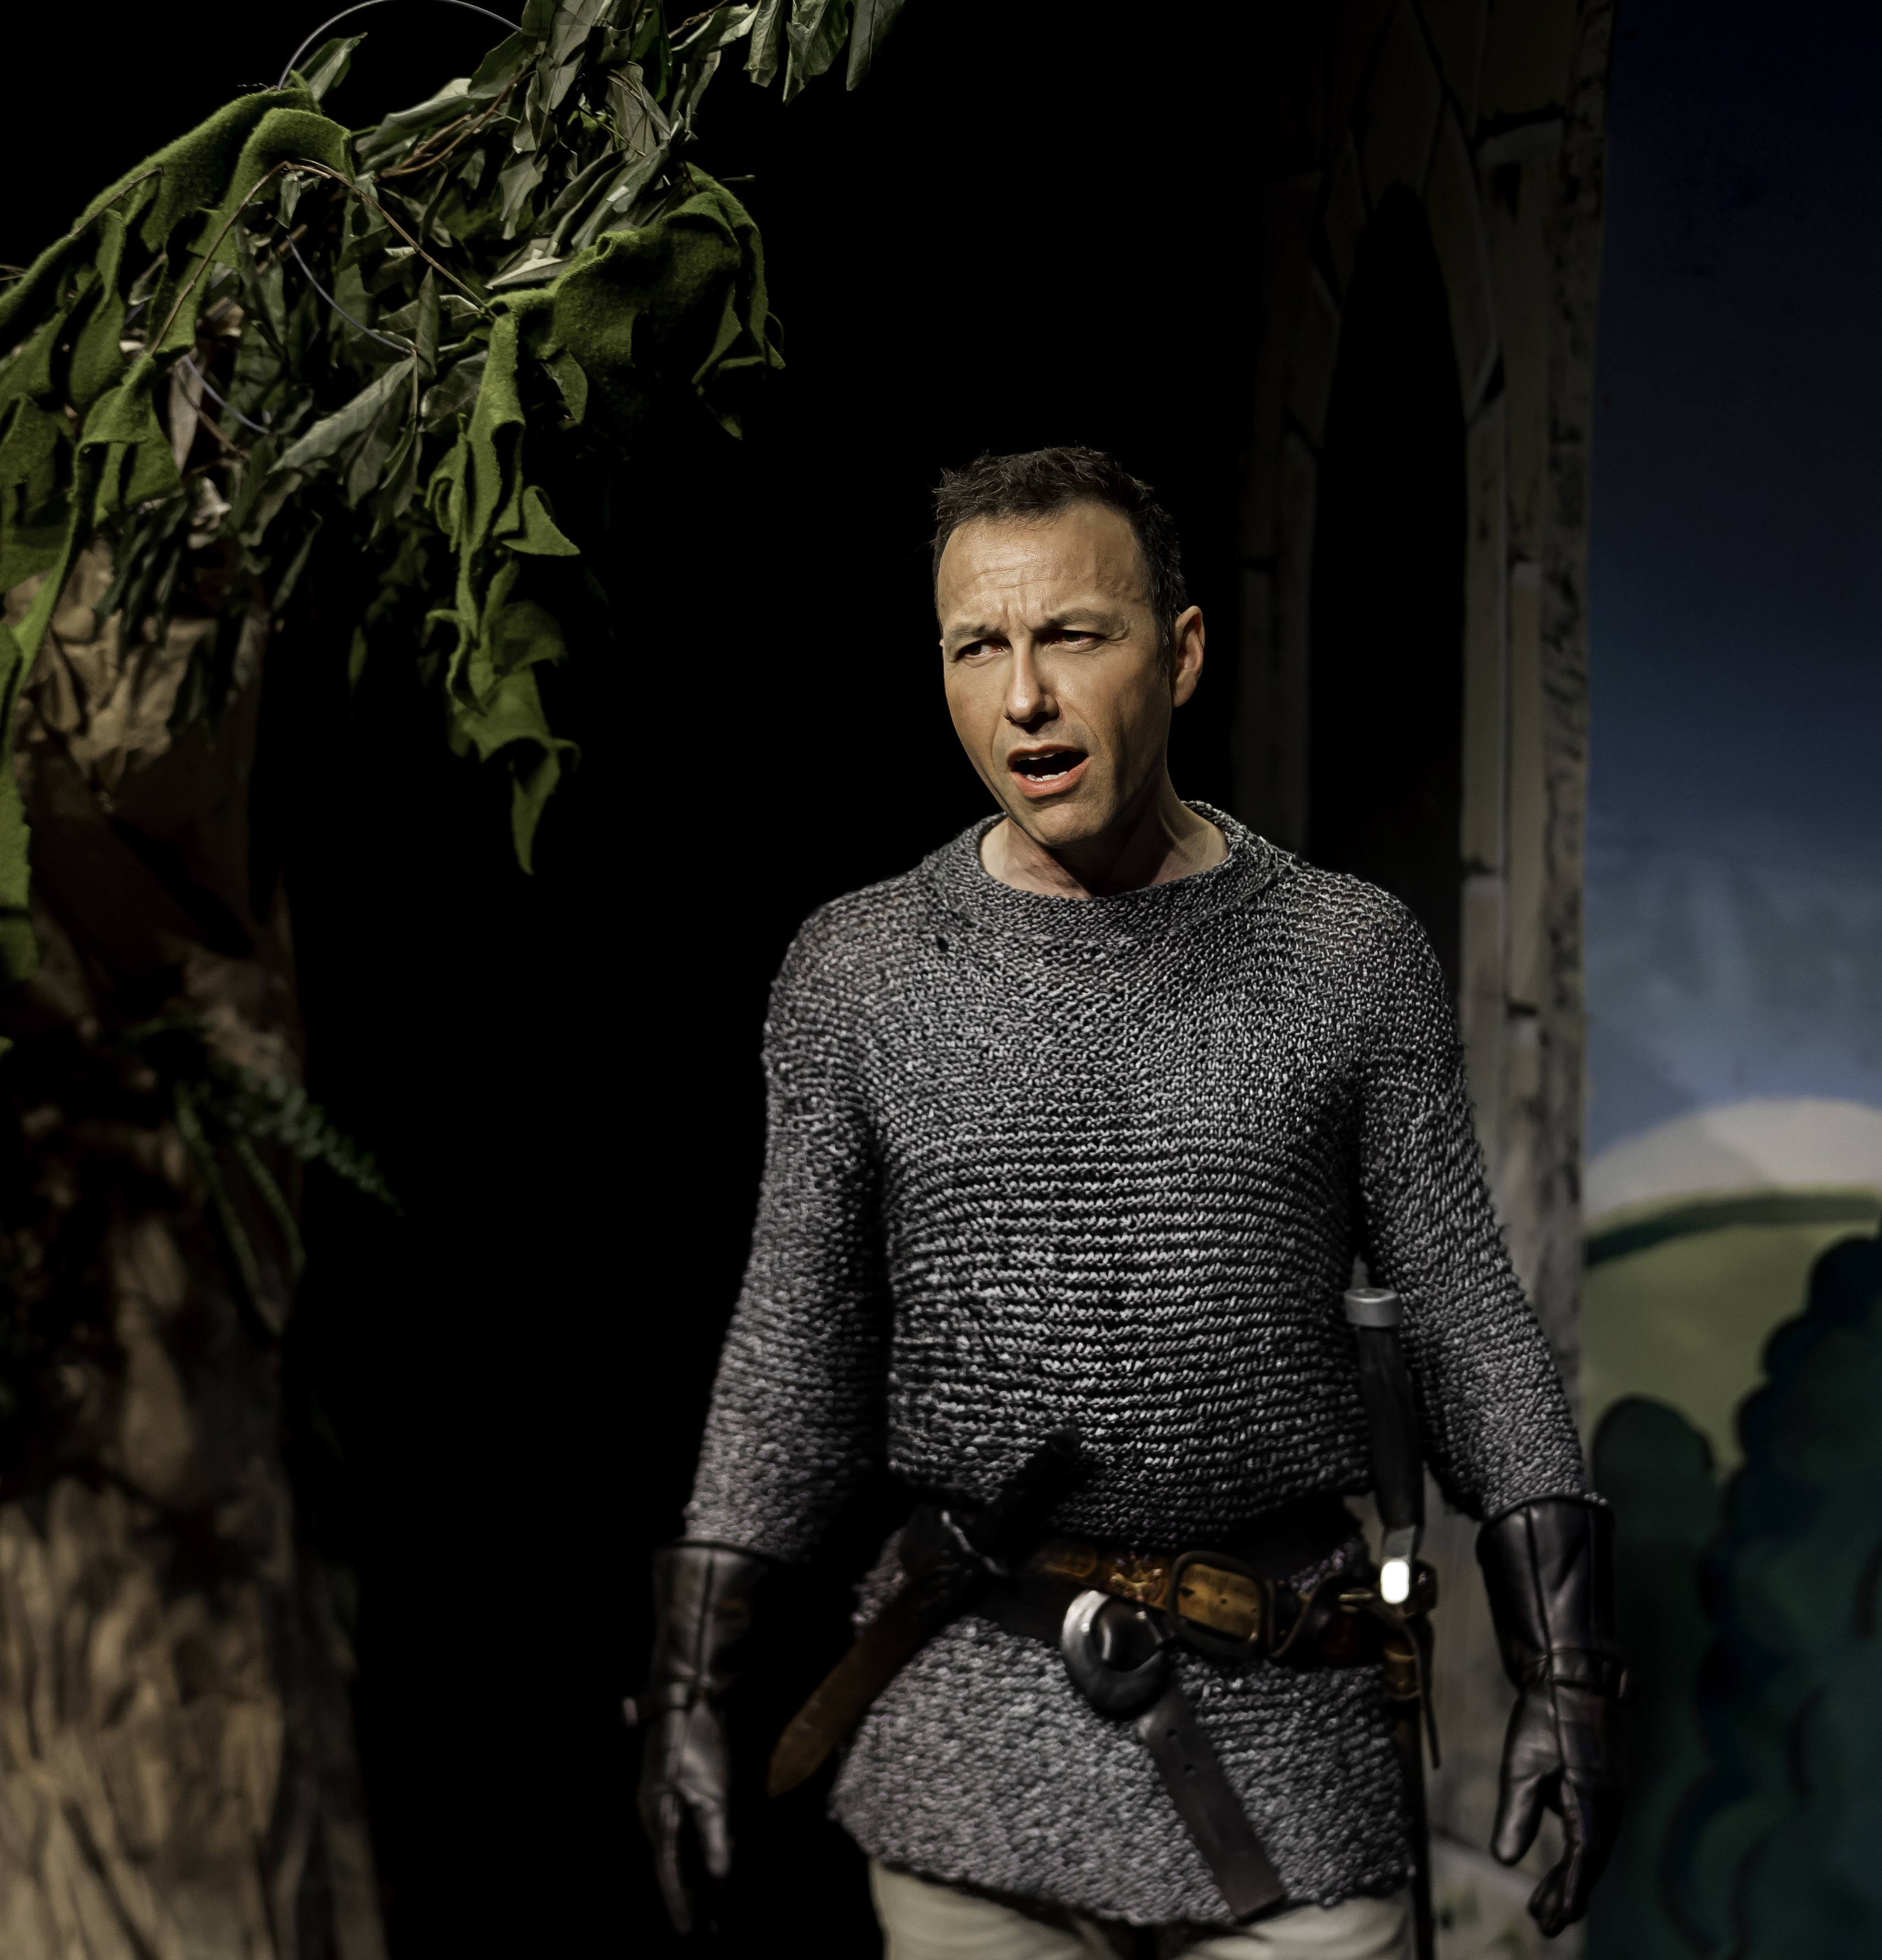 Carlos as Lancelot in Camelot